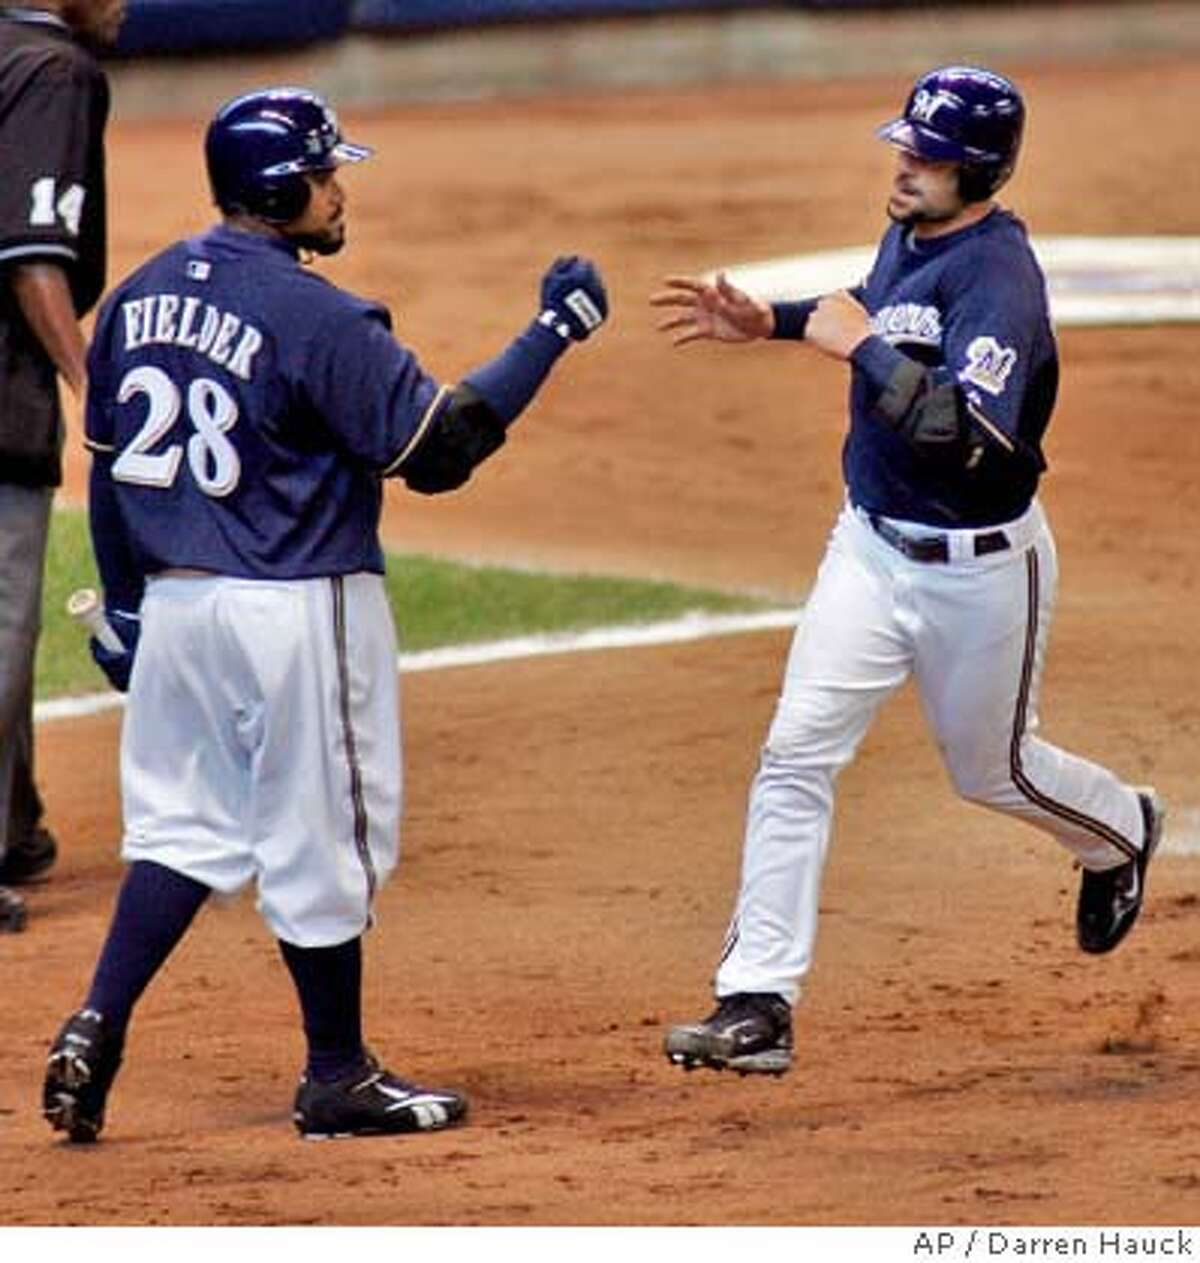 Milwaukee Brewers' Jason Kendall, right, is congratulated by Prince Fielder, left, after scoring on a sacrifice fly during the third inning of a baseball game against the San Francisco Giants on Sunday, April 6, 2008, in Milwaukee. (AP Photo/Darren Hauck)